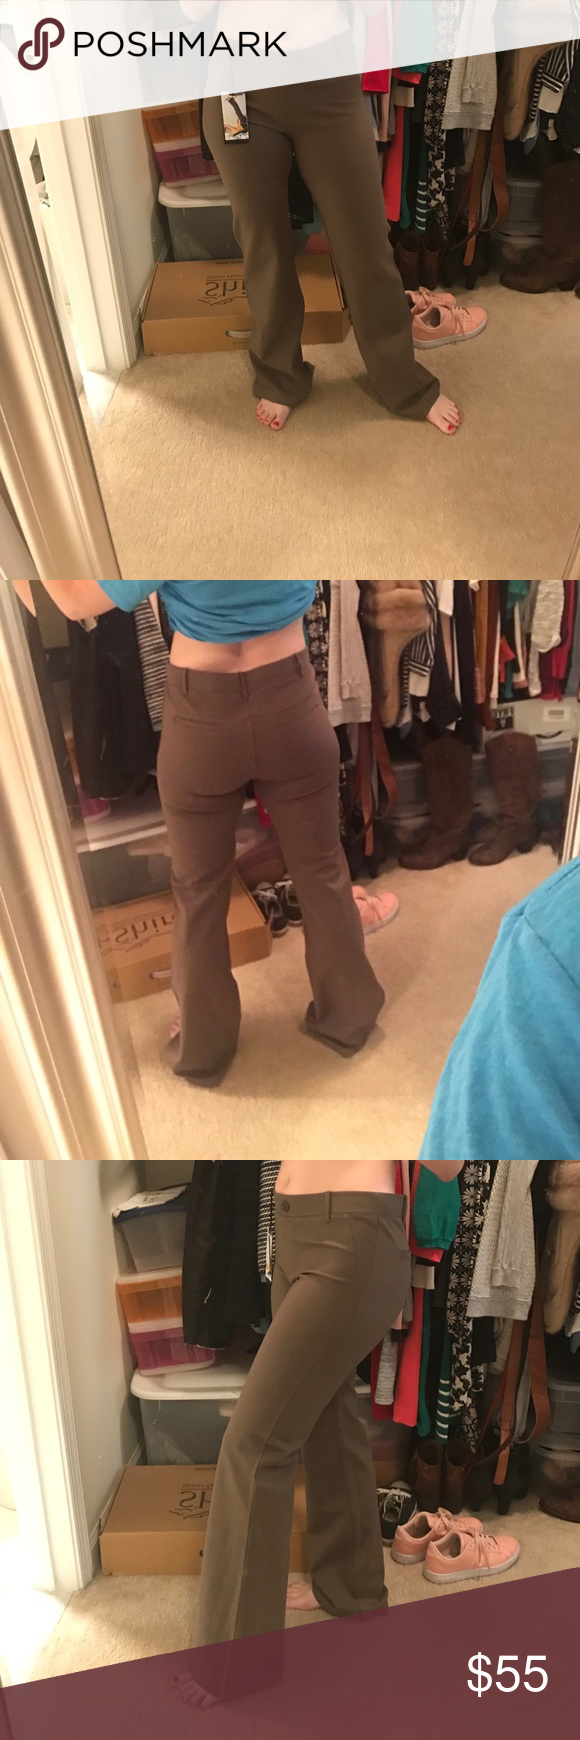 5865397145897 NWT Betabrand Yoga Dress Pants in Taupe size M Never worn before! Work yoga  pants in a dark khaki/taupe color. Size medium fits between 6-8. Has belt  loops.